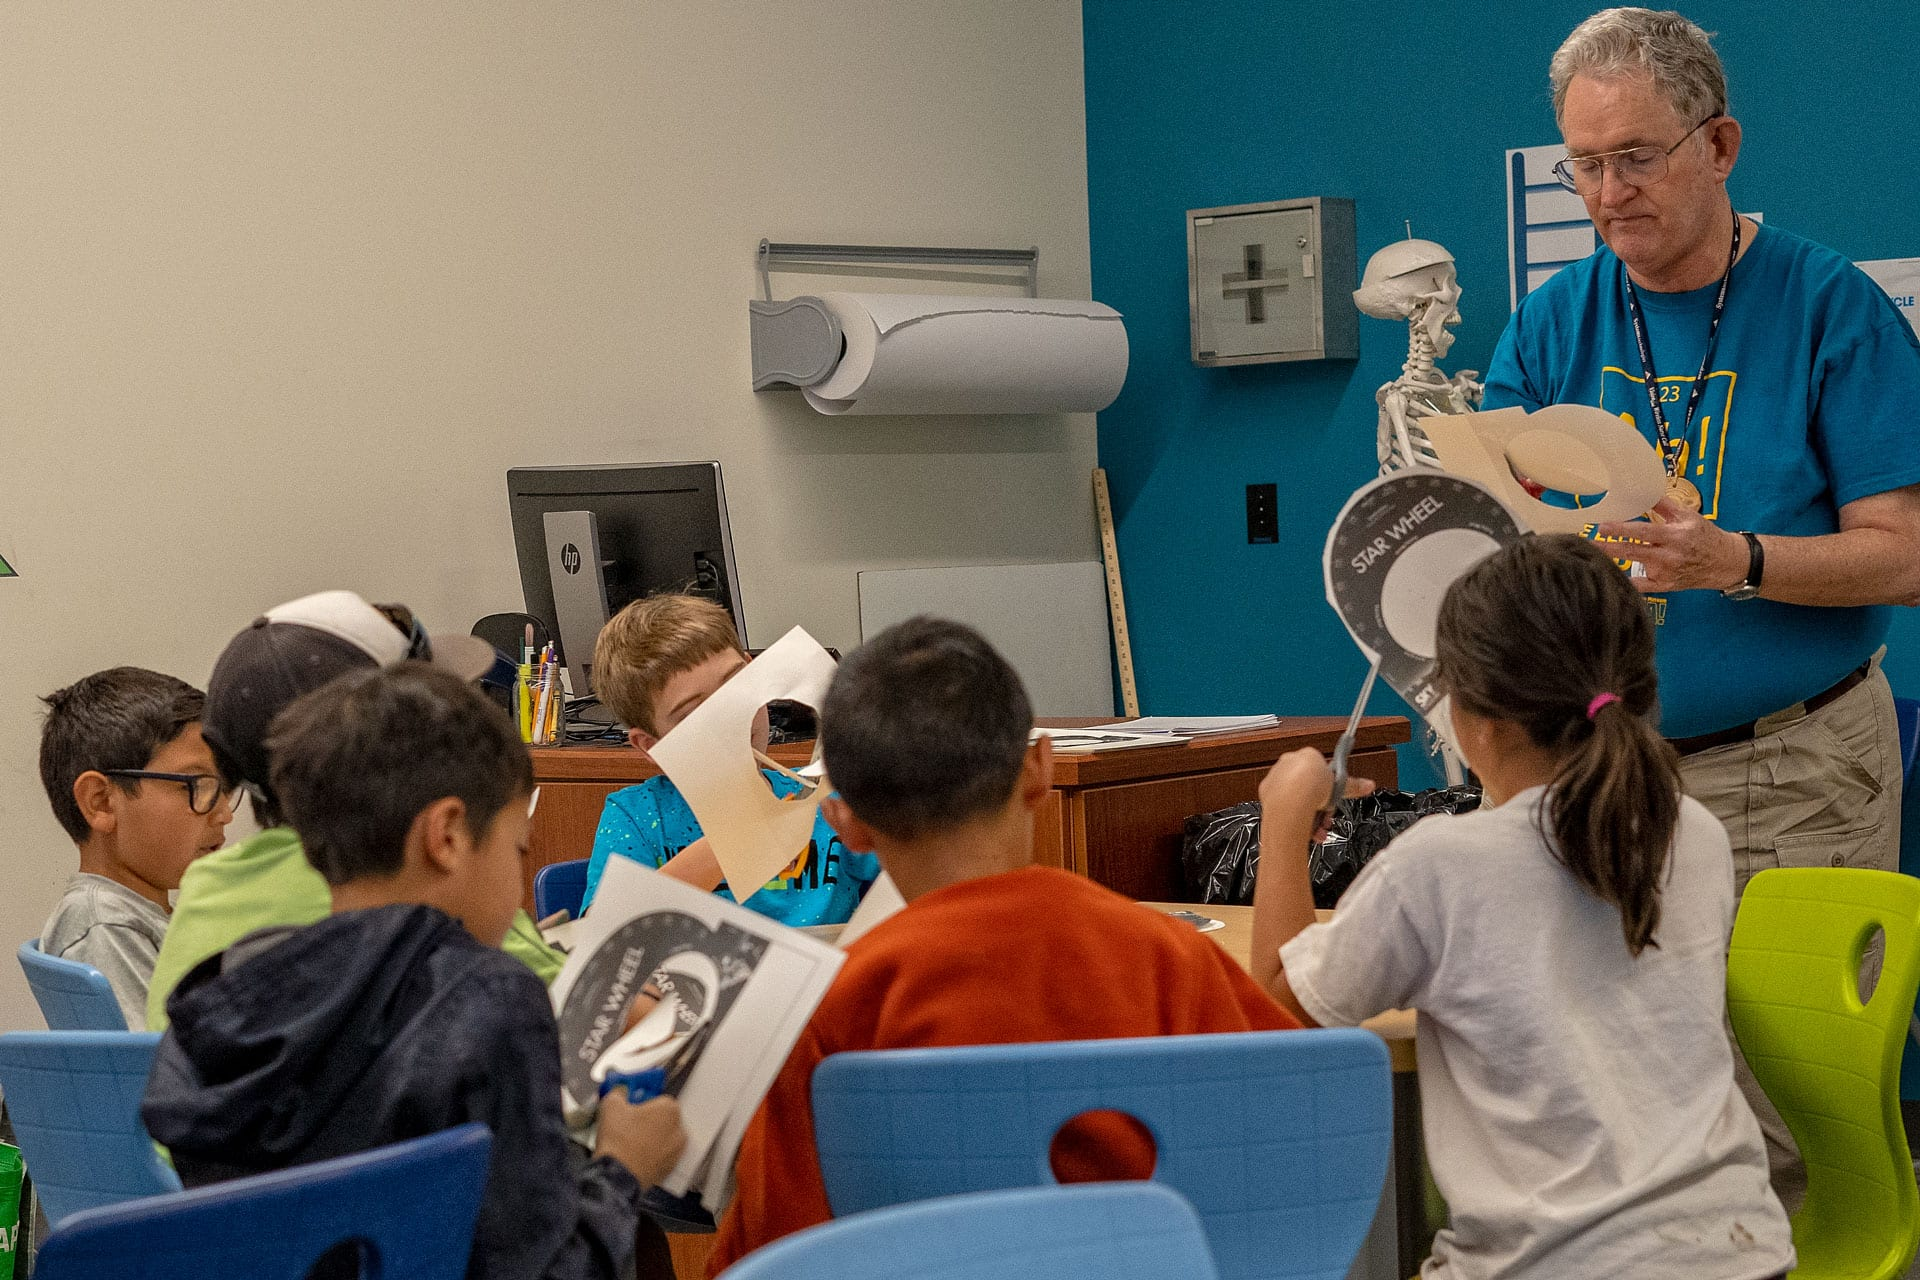 Intergenerational Learning comes to The Commons of Hilltop